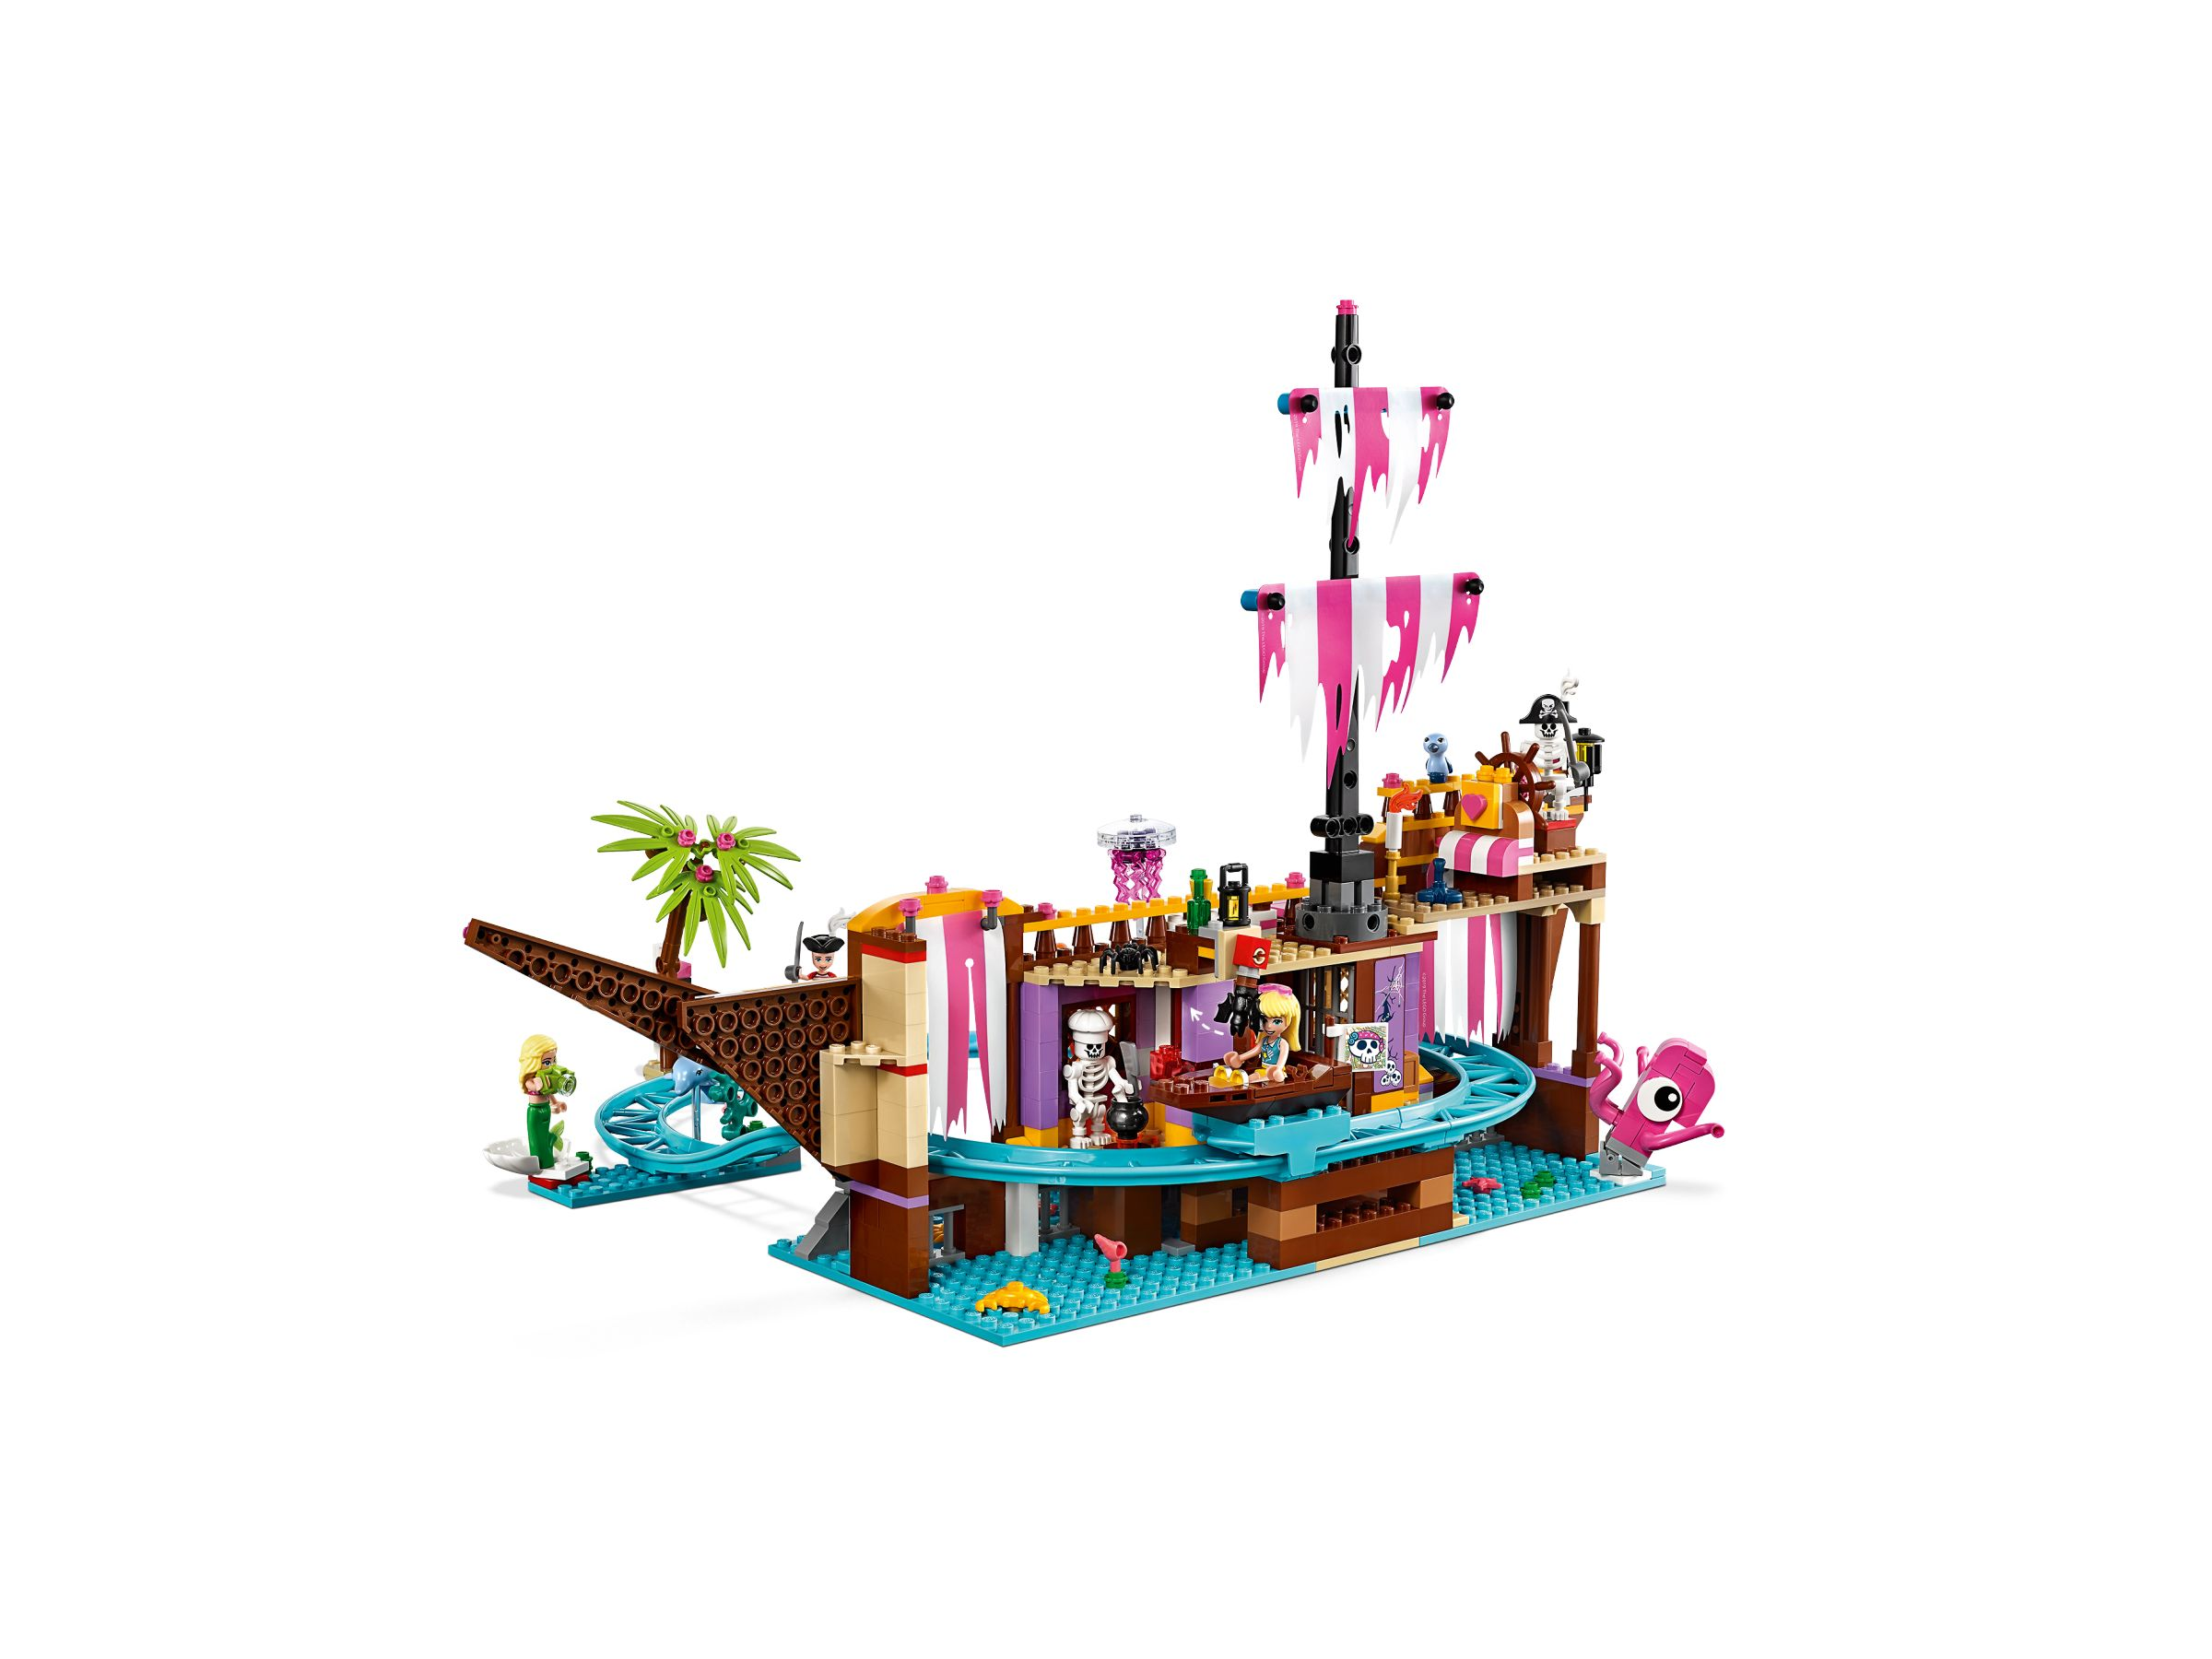 LEGO Friends 41375 Vergnügungspark von Heartlake City LEGO_41375_alt3.jpg